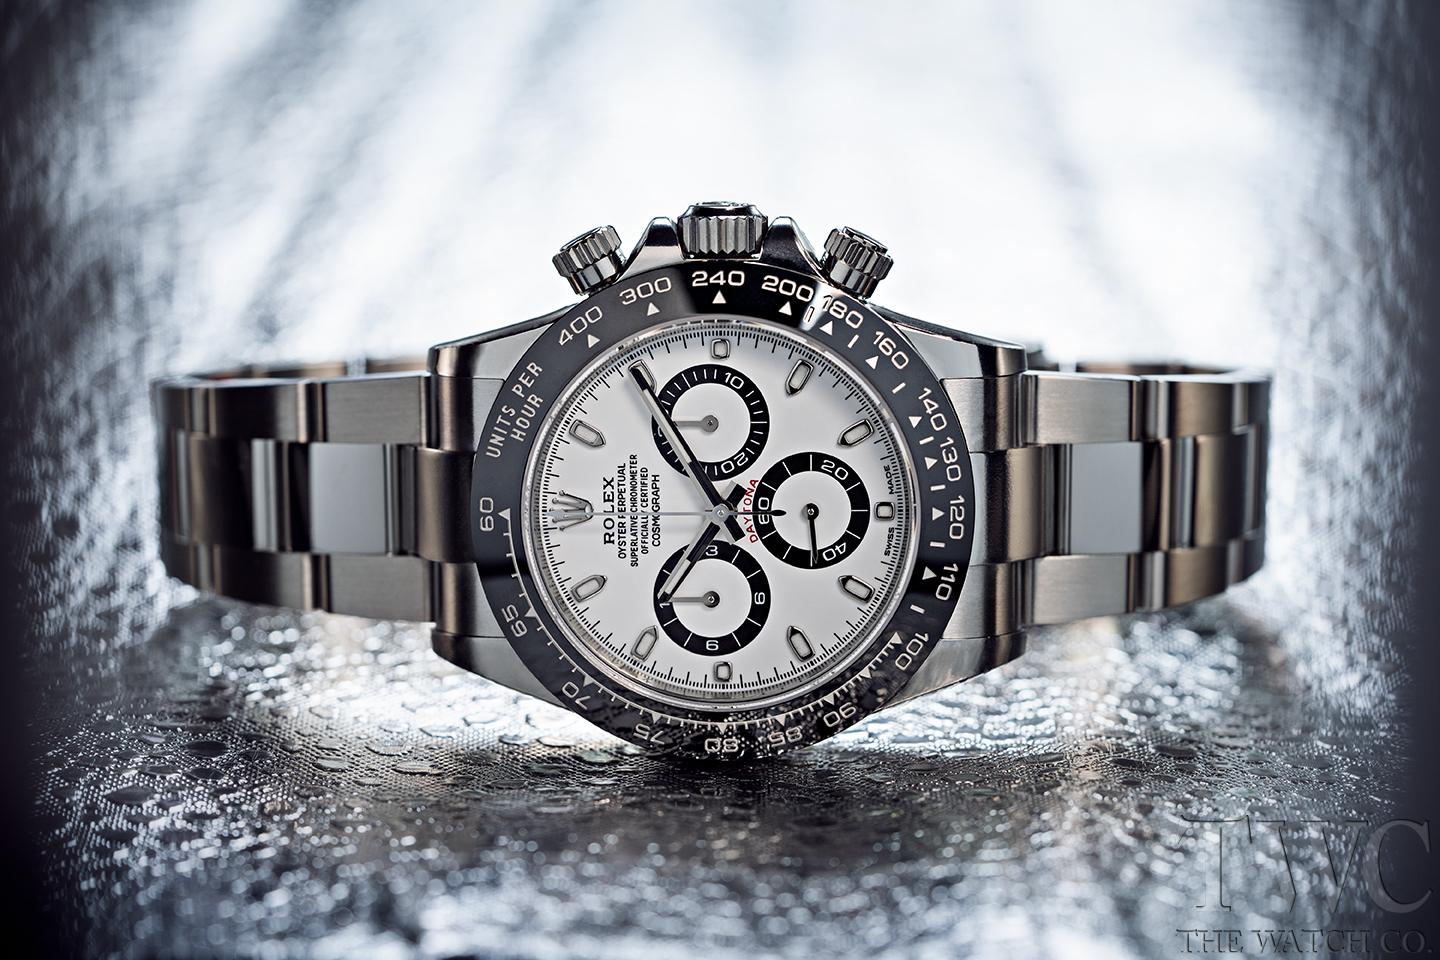 5 Reasons Why You Should Buy A Chronograph Watch